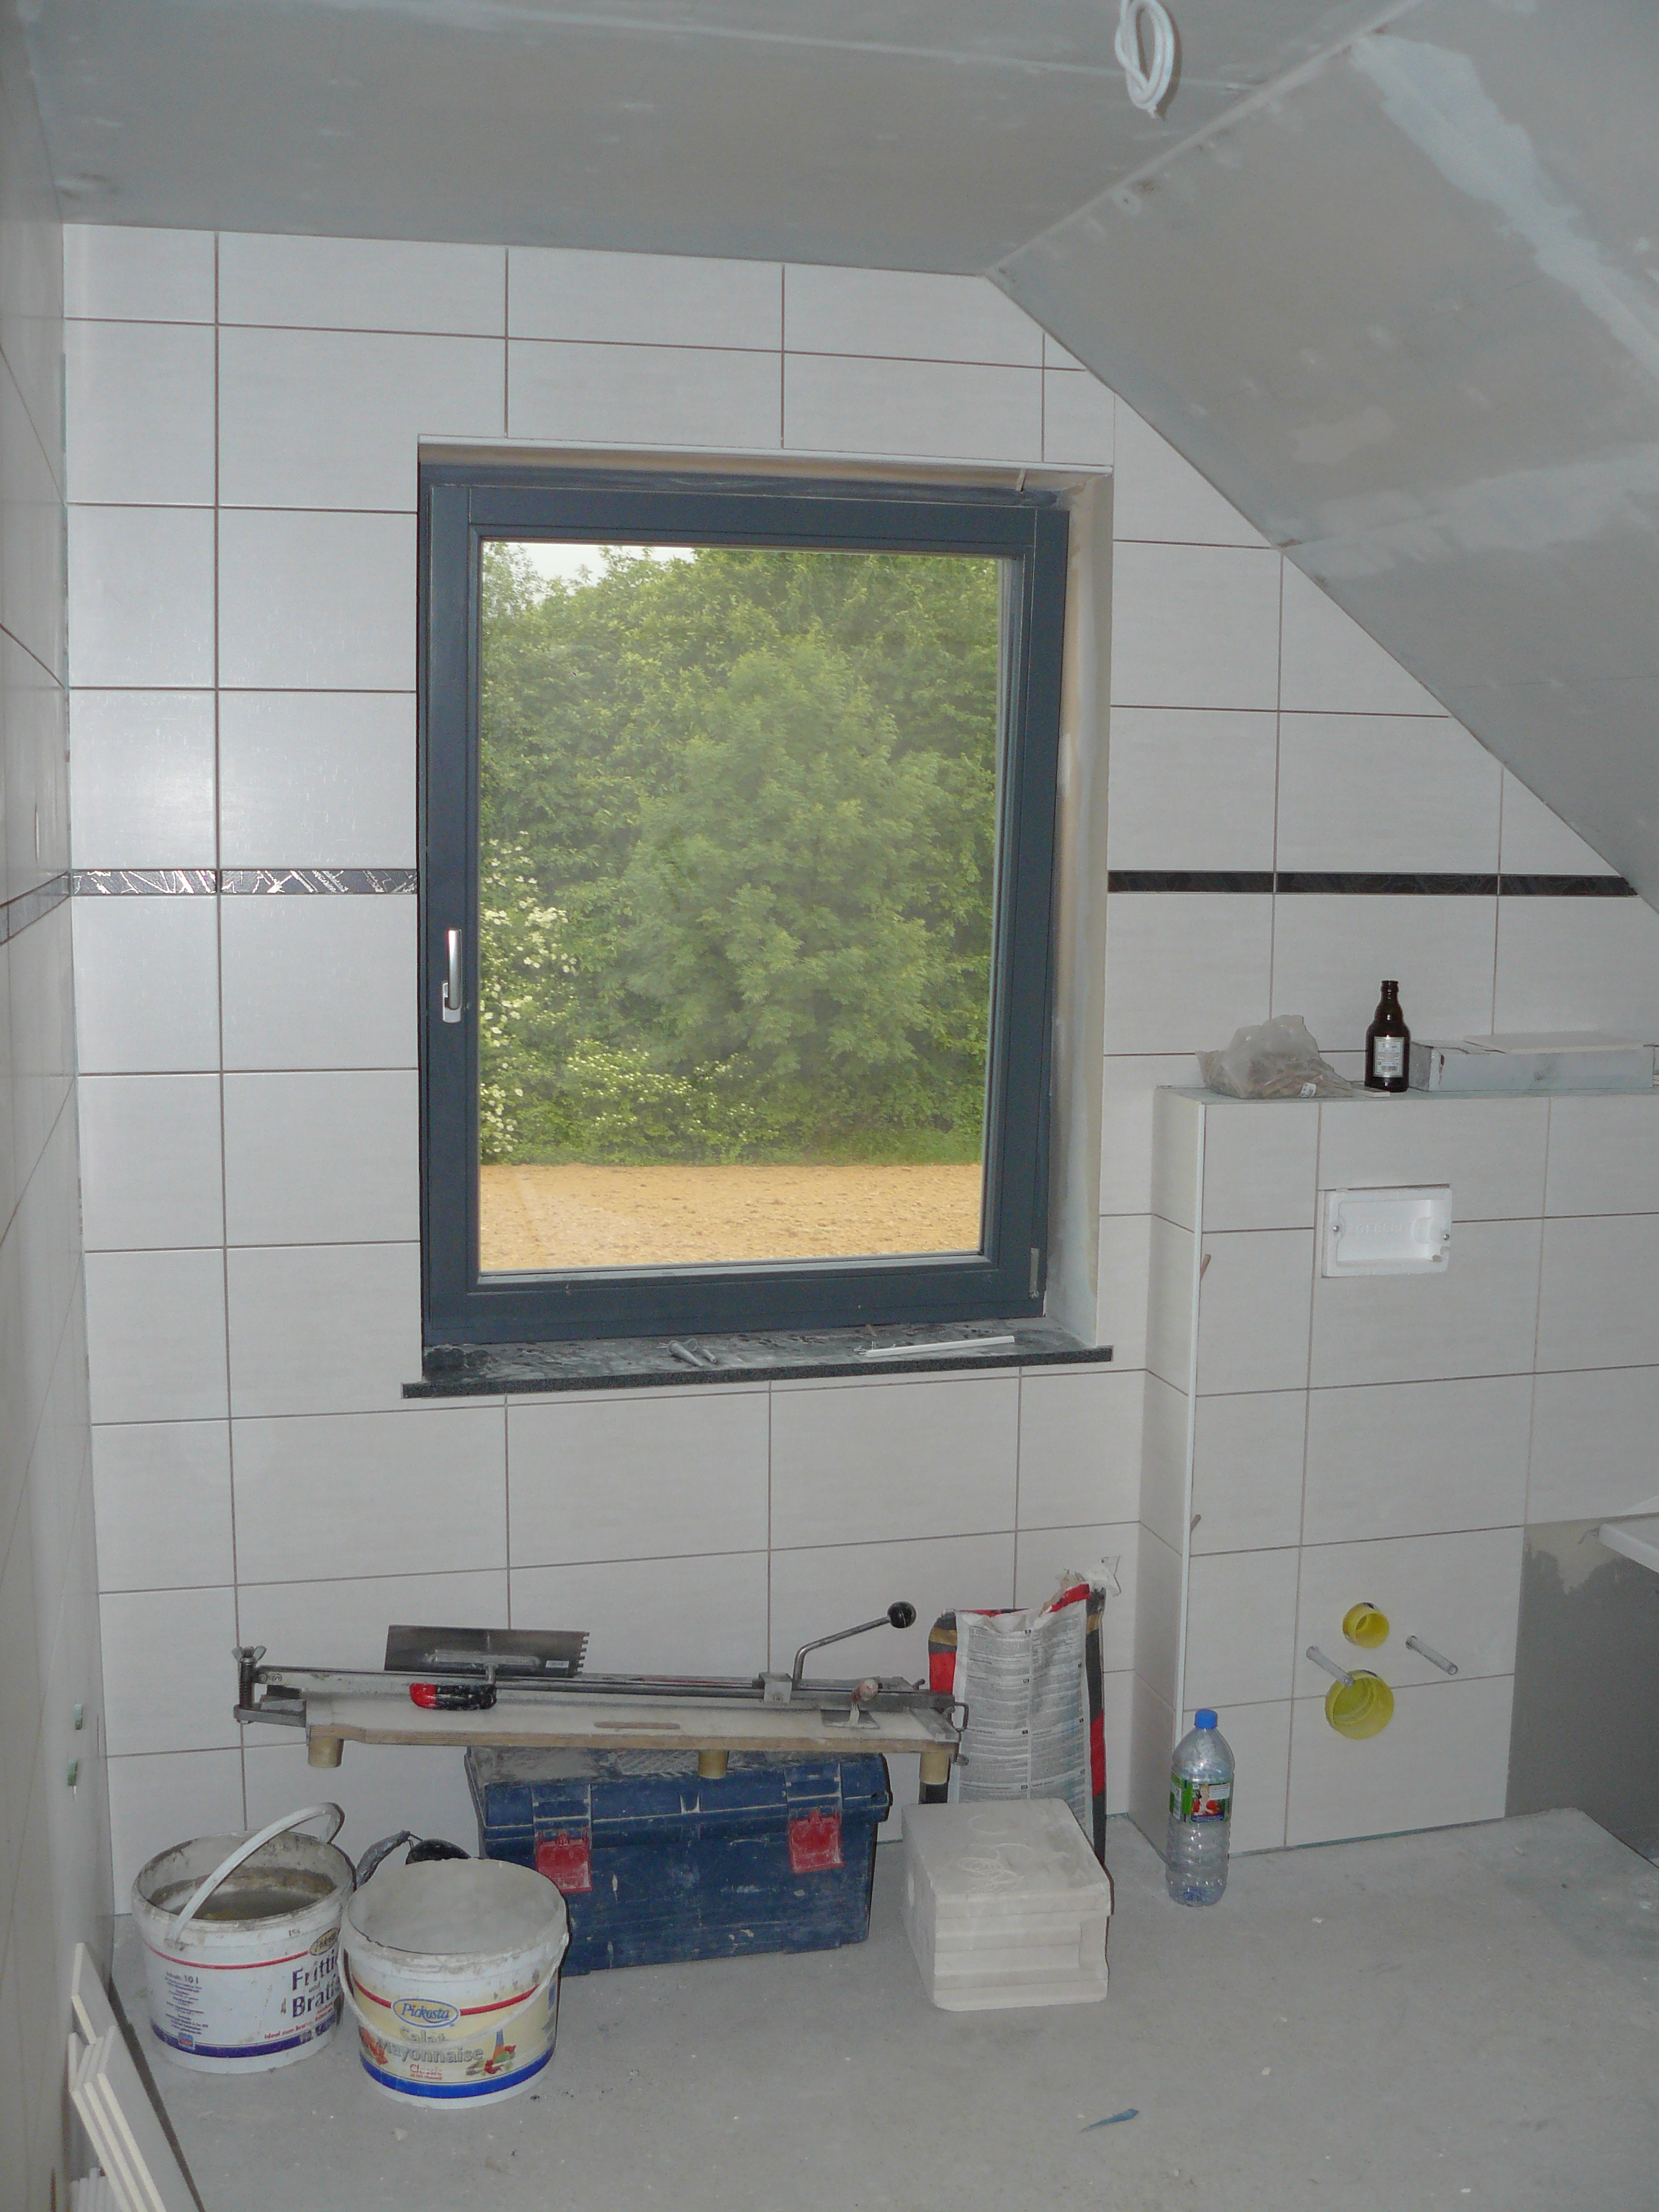 Badezimmer Decke Spachteln Badezimmer Spachteln Affordable Southern Tiles Kln